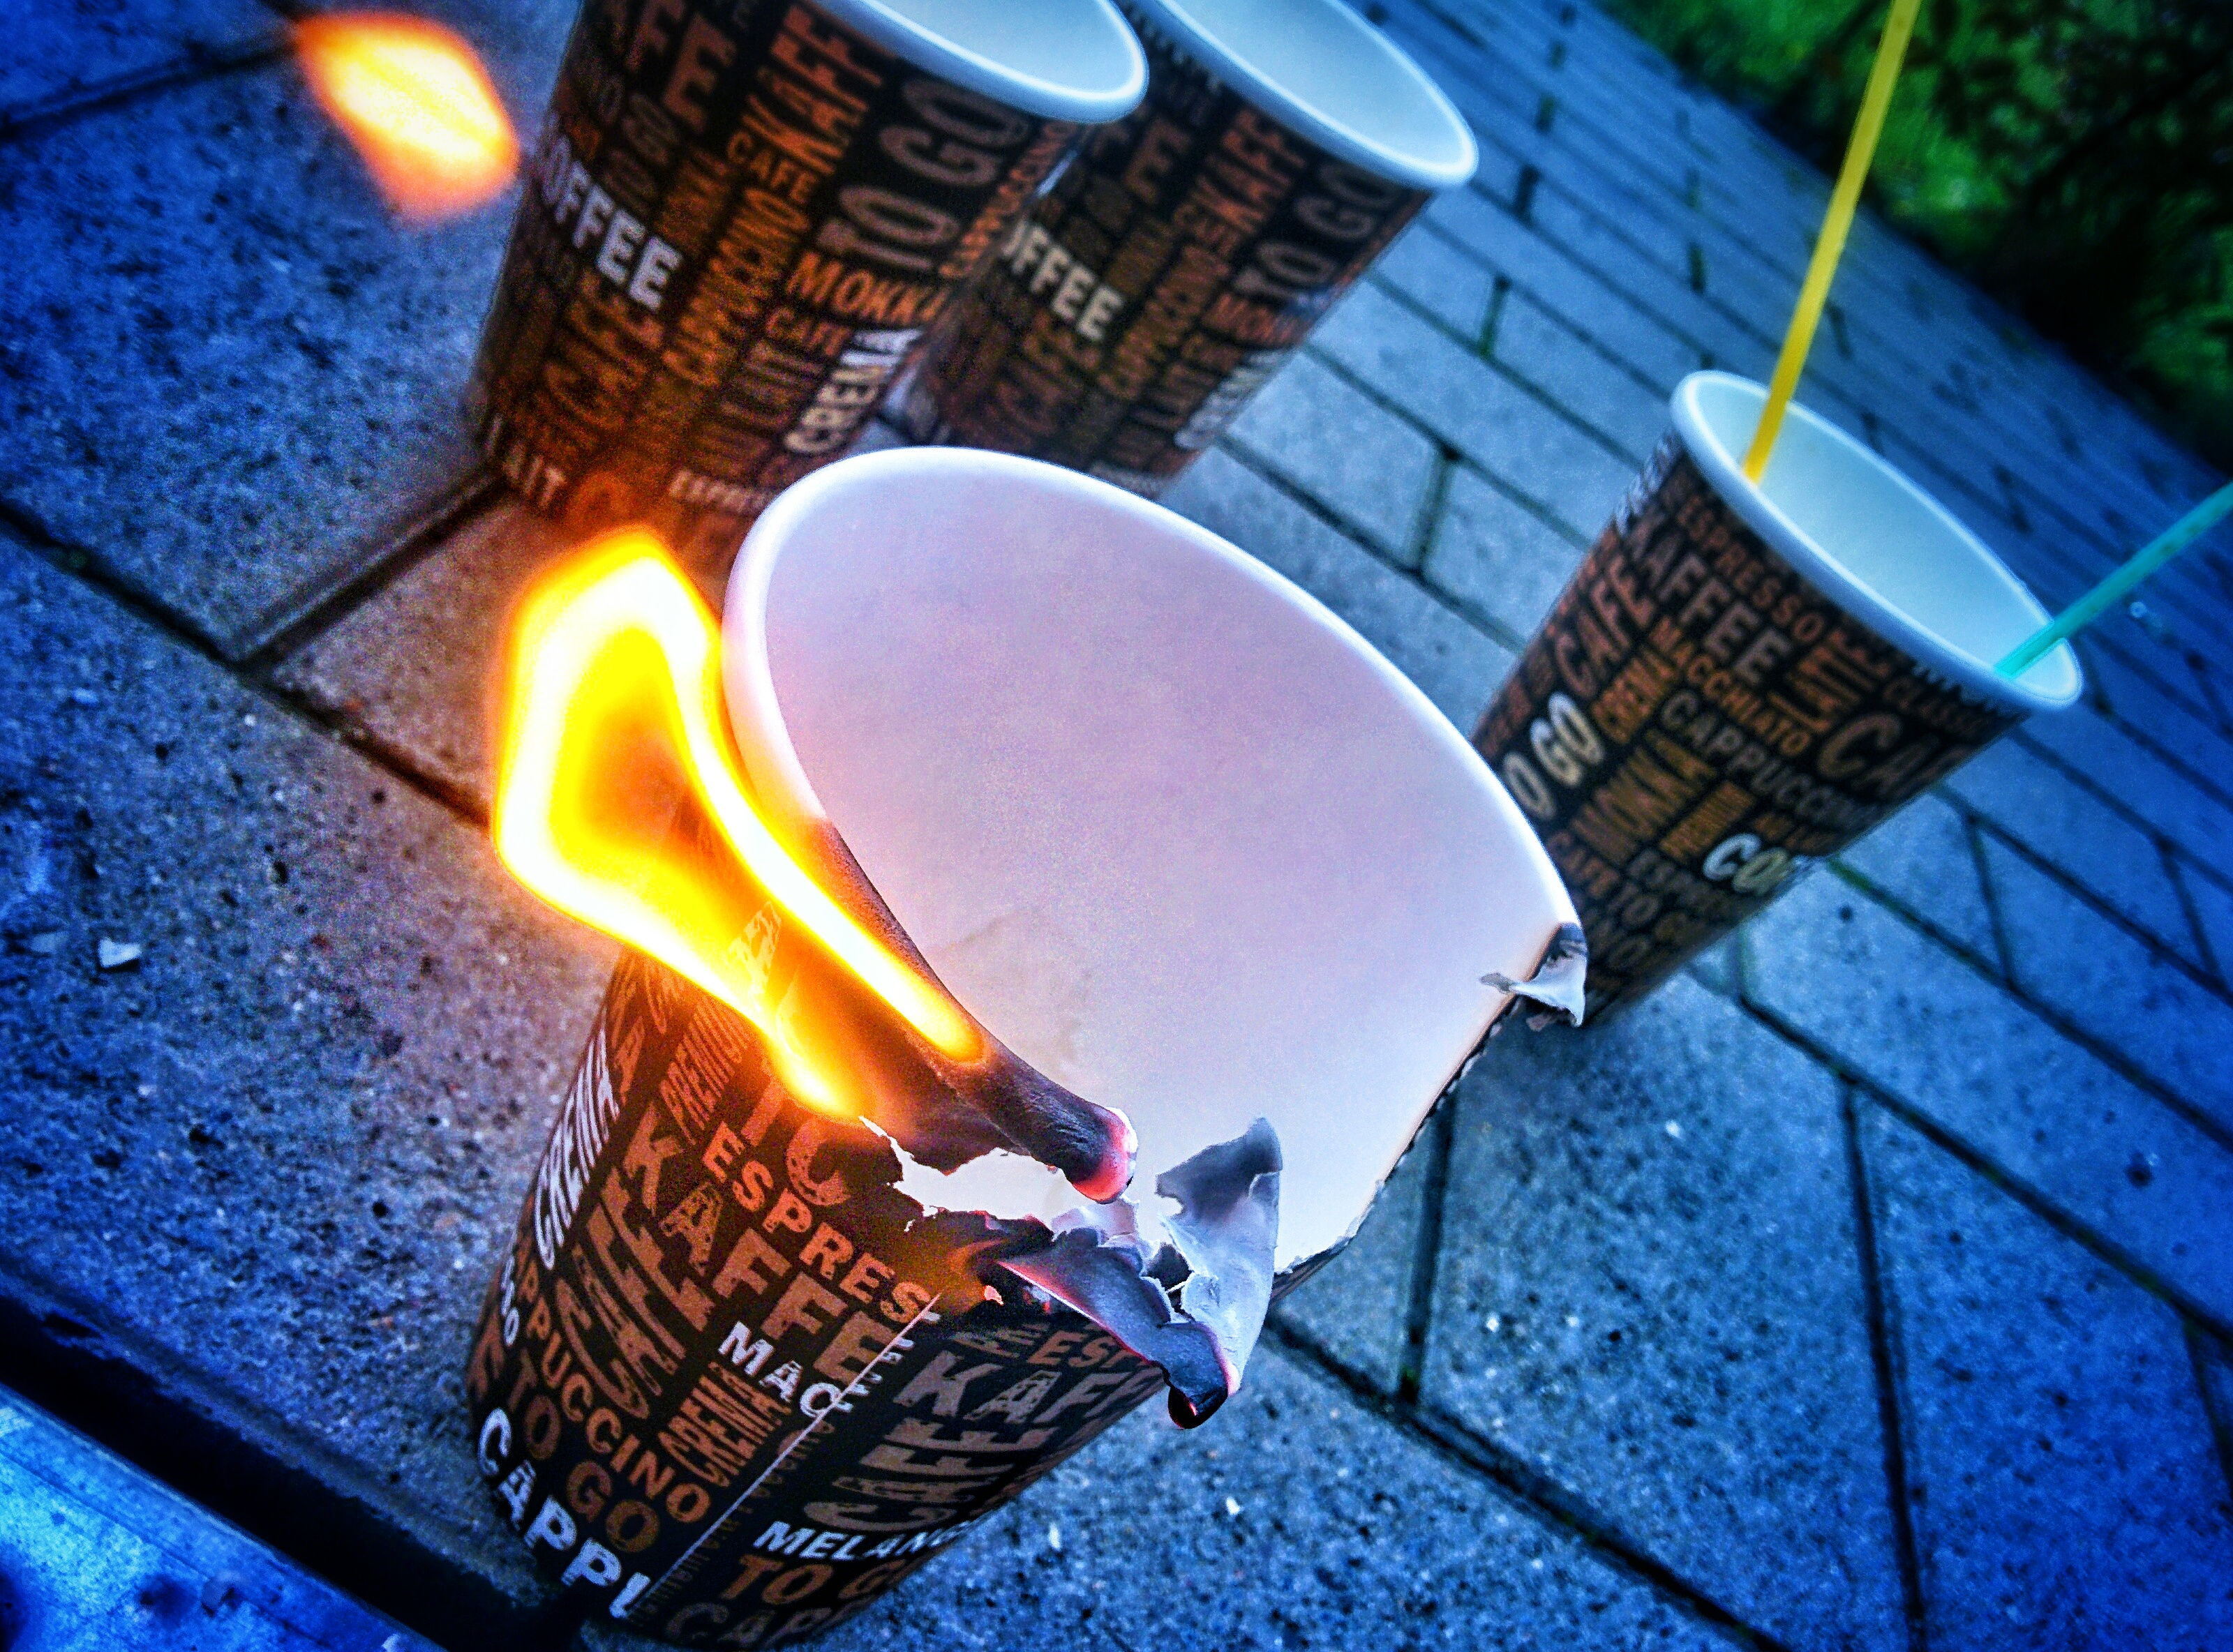 4 paper coffee cups are standing on some paving blocks. The one infront is separated from the others and is on fire.